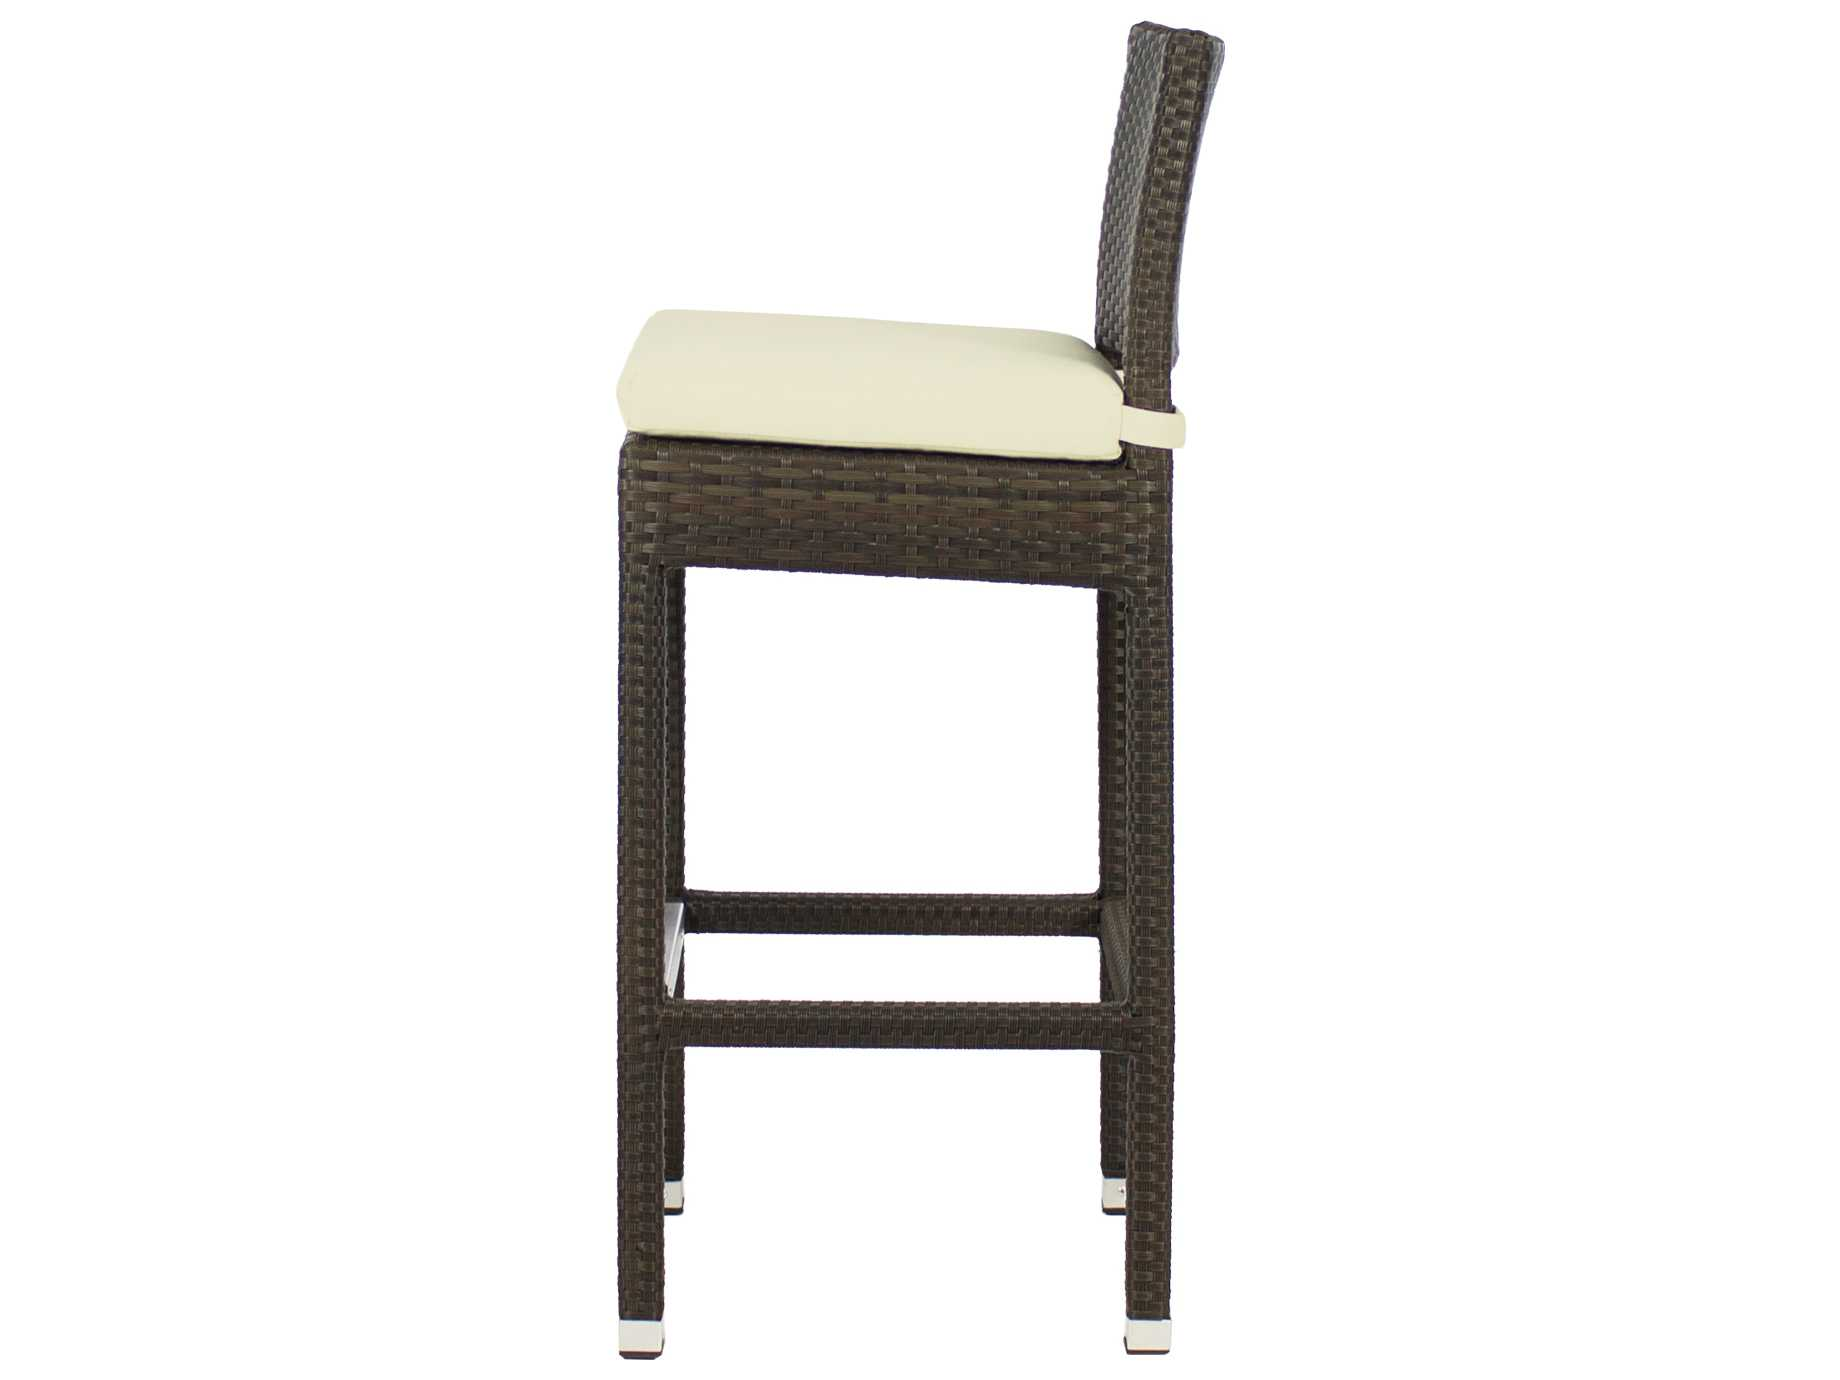 Source Outdoor Furniture Zen Wicker Bar Side Chair SO  : SCSO200217211zm from www.patioliving.com size 1840 x 1380 jpeg 52kB